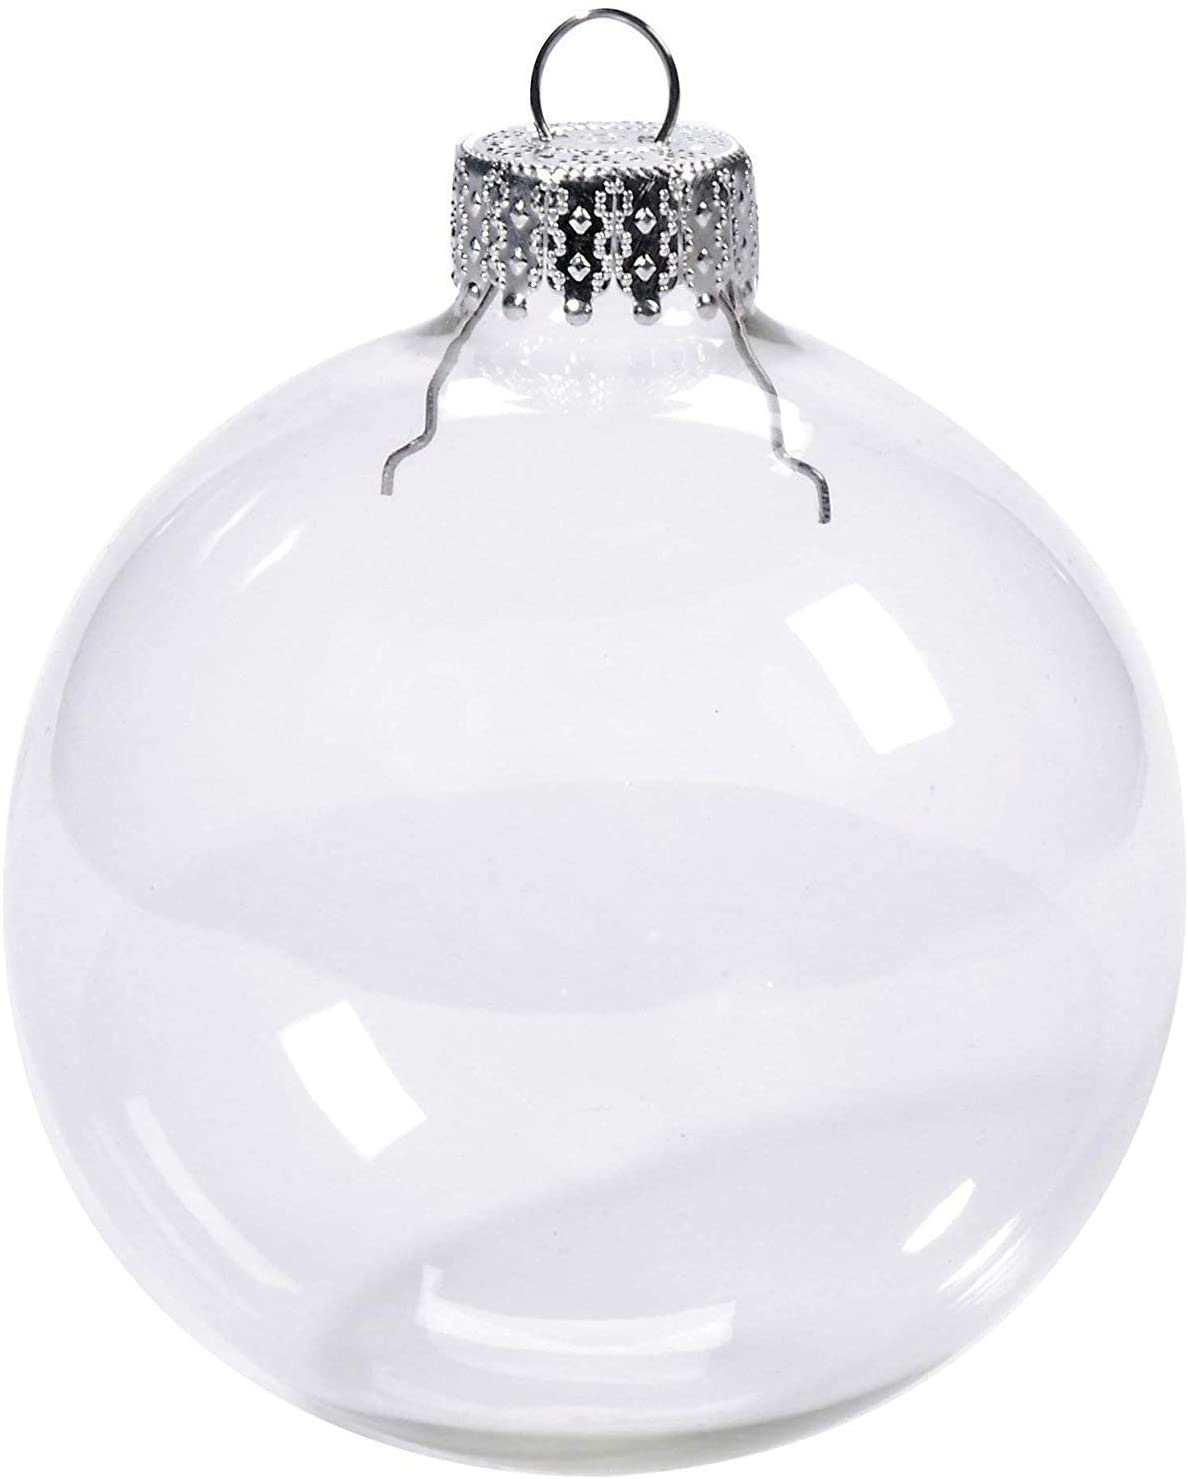 Darice XMAS HEAVY GLASS BALLS 4 PC BOX 80MM, 80 mm (Pack of 4), Clear, 4 Count